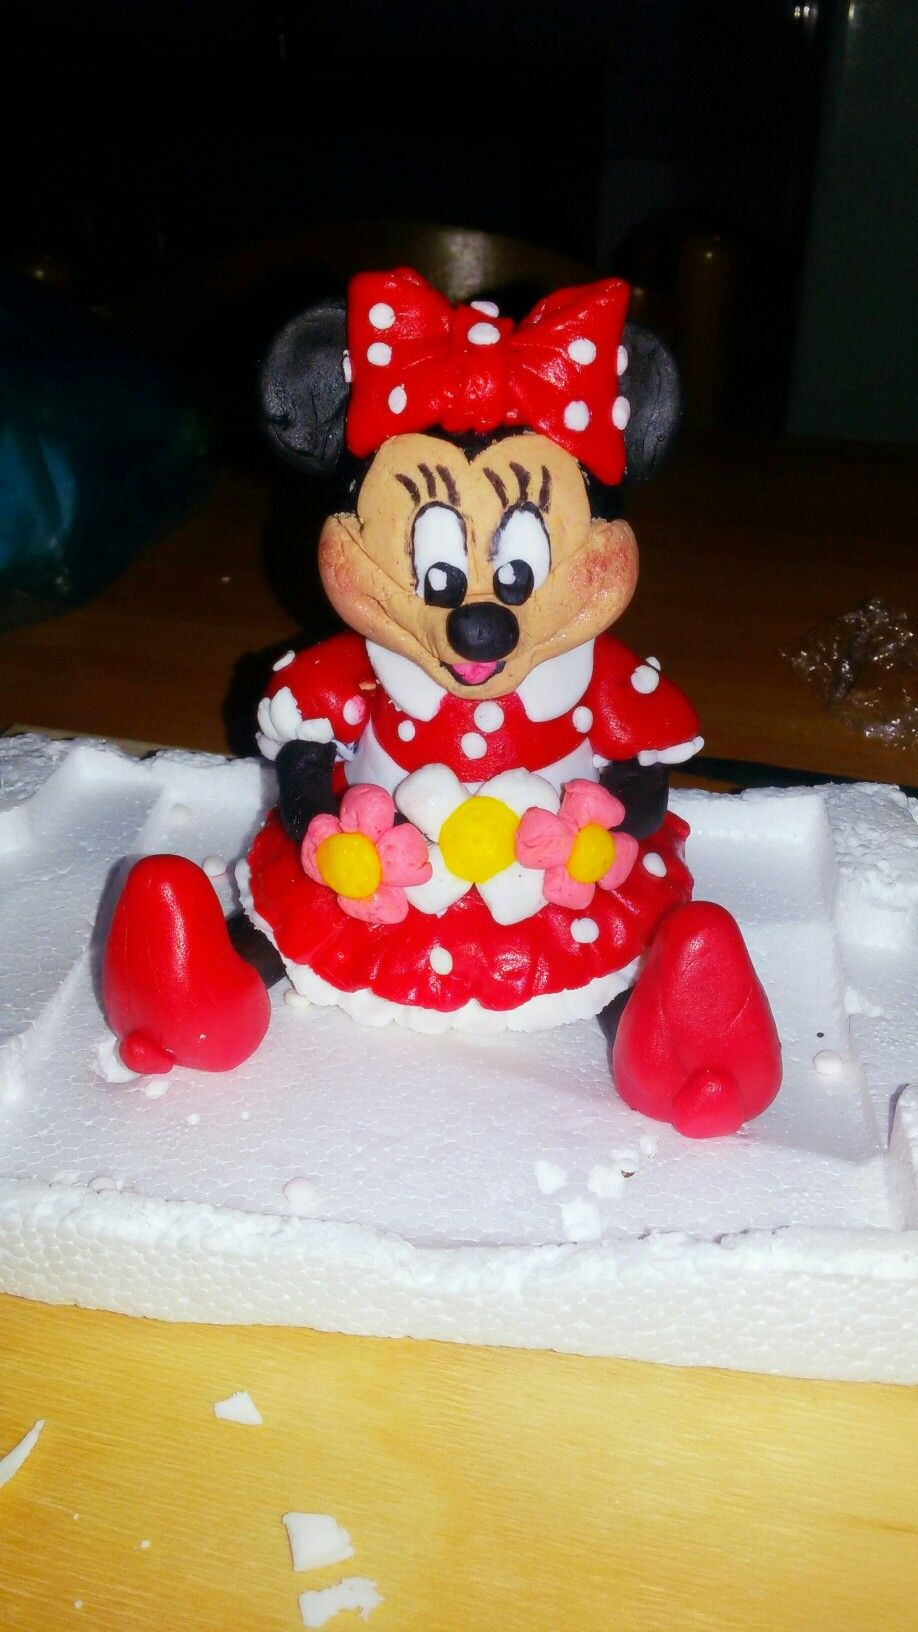 Minnie creata interamente a mano da me in pdz❤